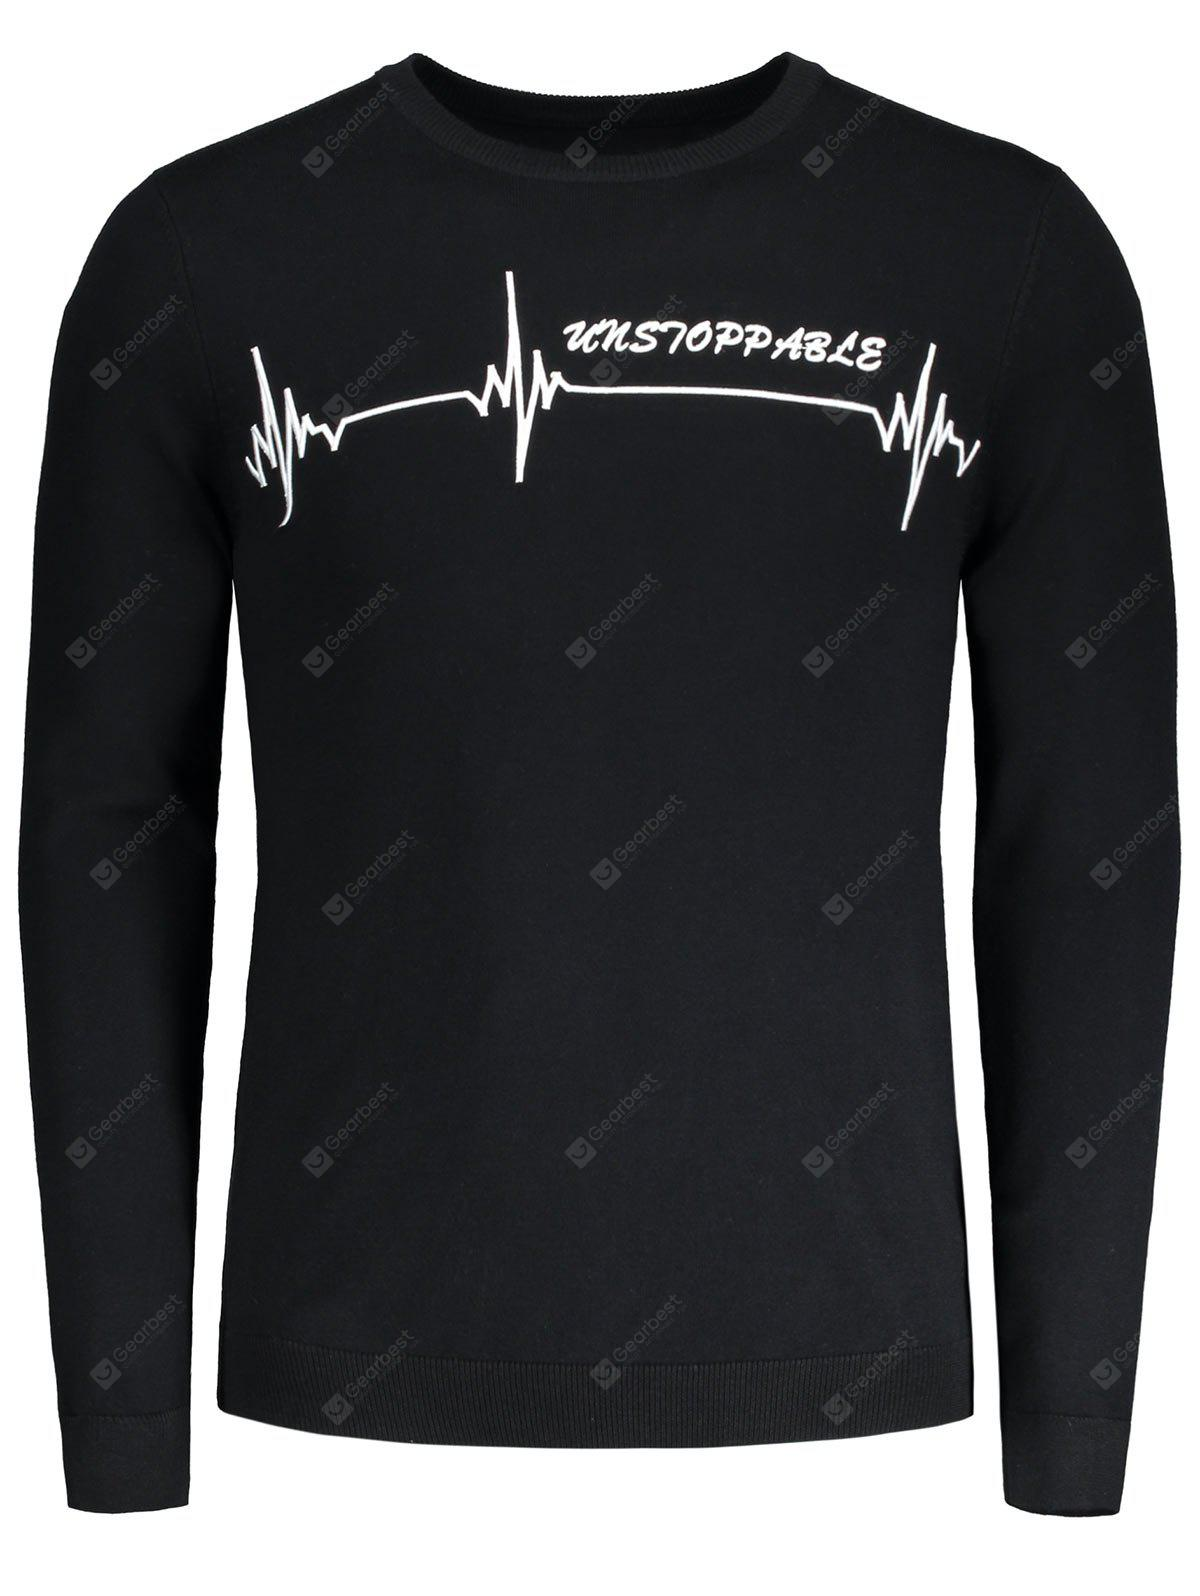 Crew Neck Graphic Embroidered Sweater